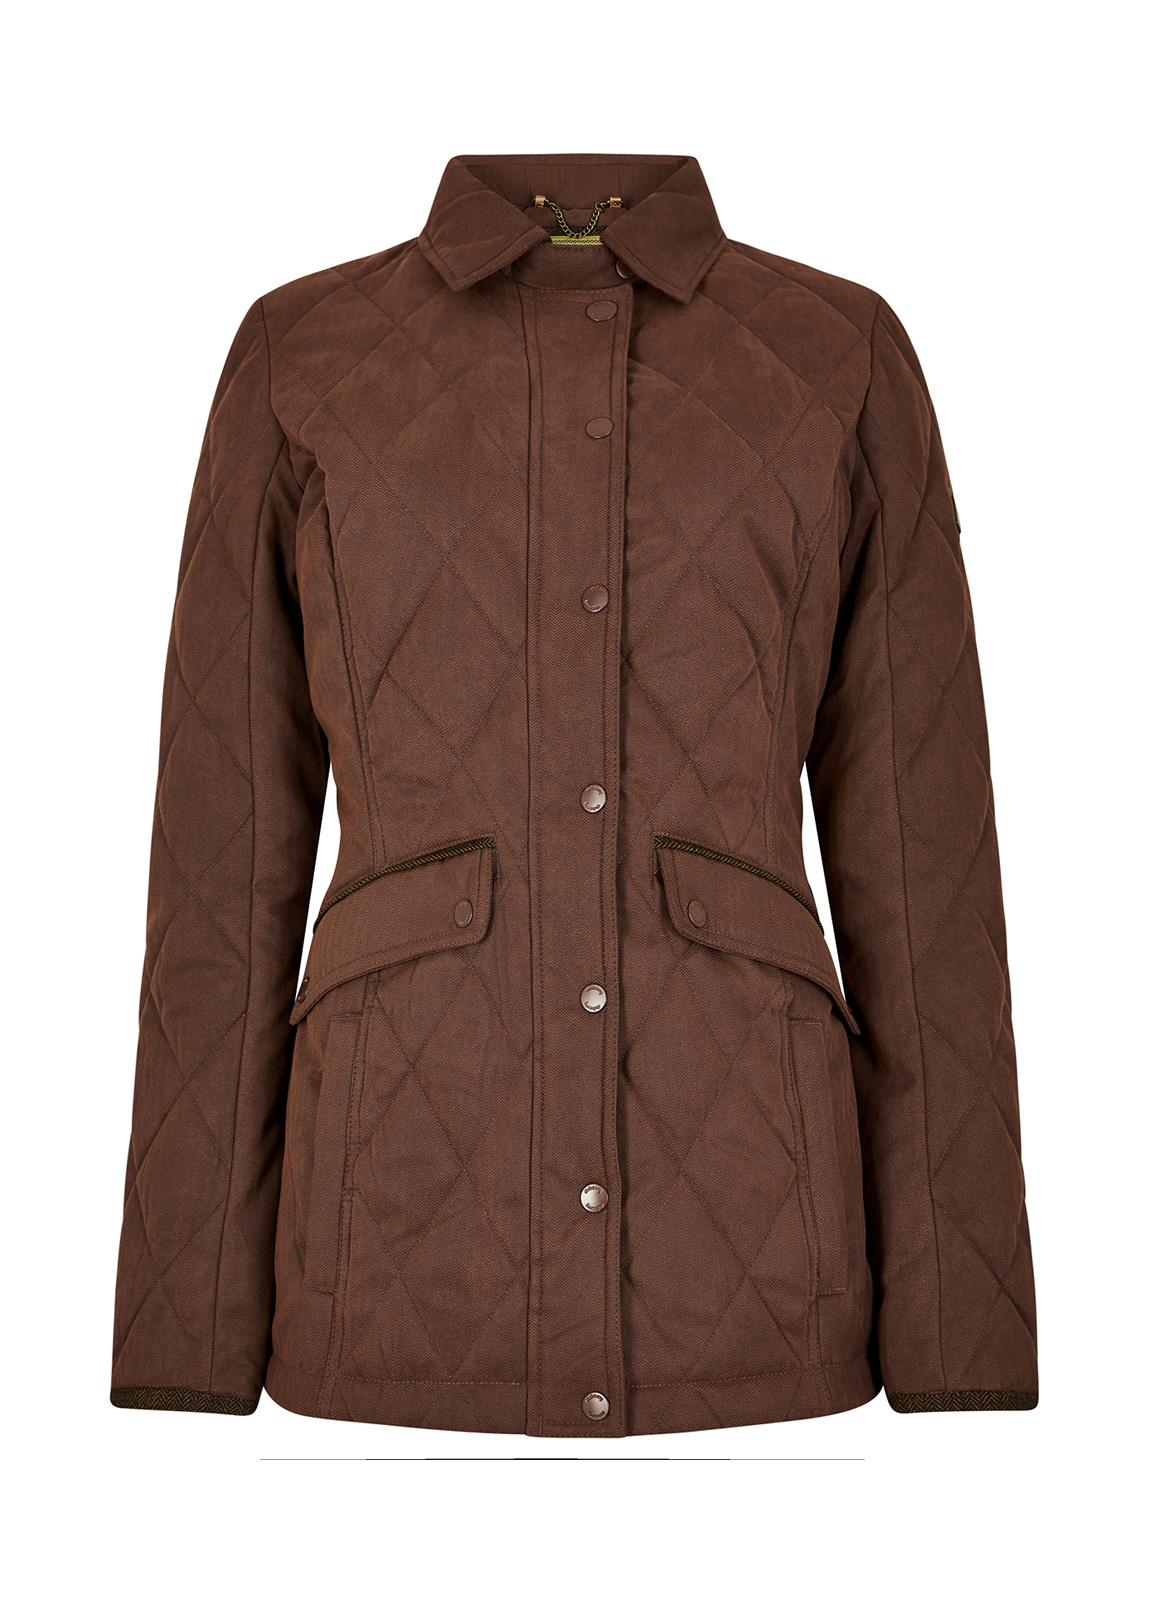 Dubarry_Heaney Quilted Coat - Russet_Image_2